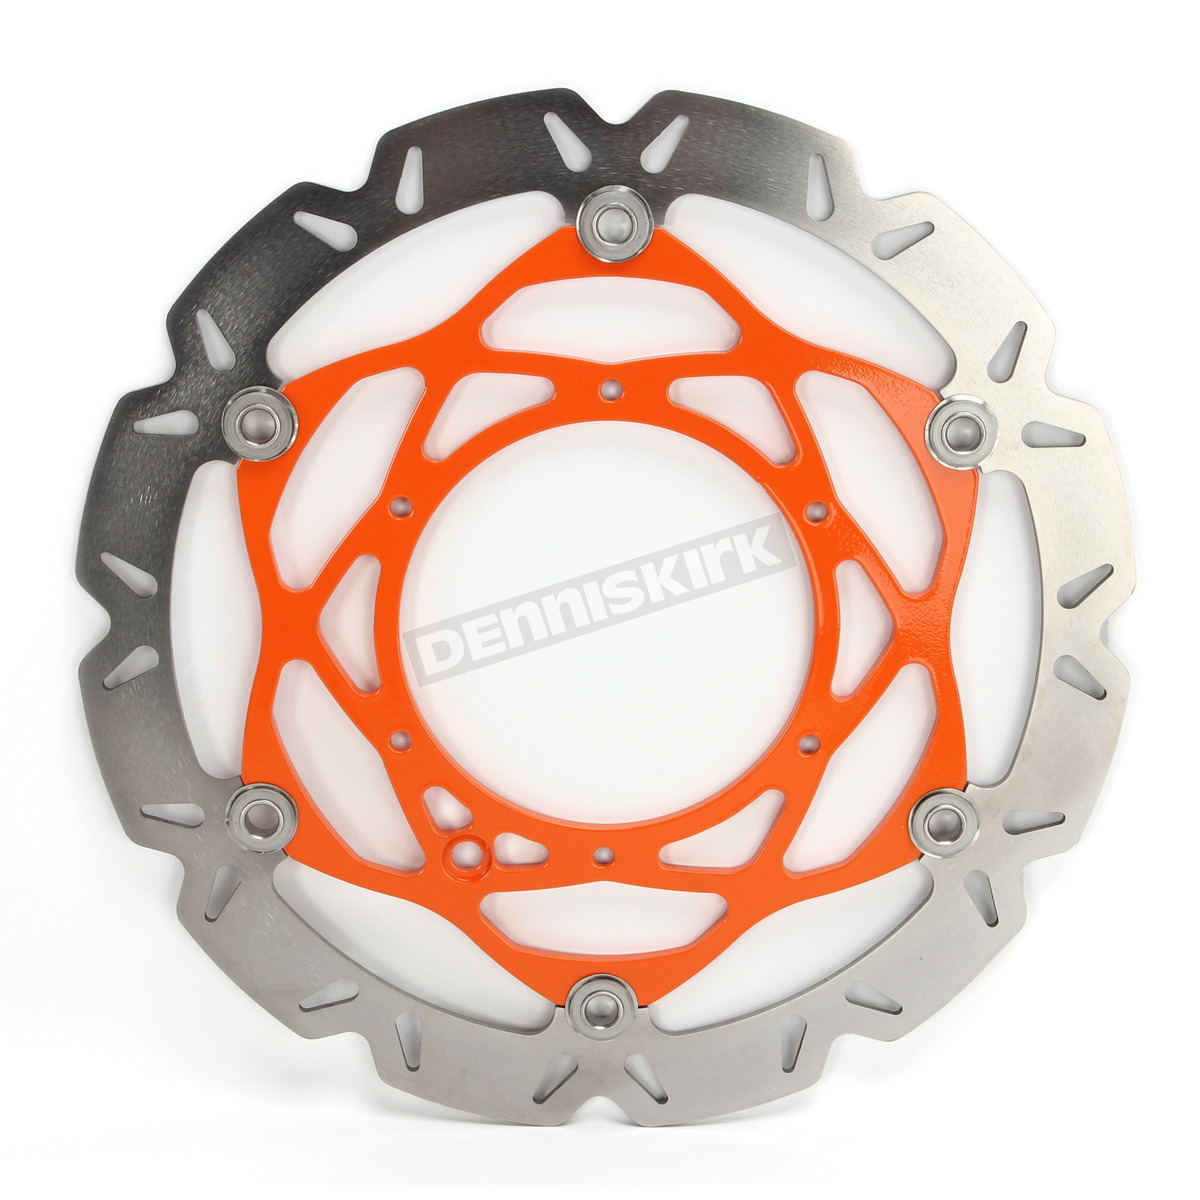 Ebc Ktm Smx Carbon Look Brake Rotor Kit Smx60org Dirt Bike Wiring Diagram 125 Exc Six Days 200